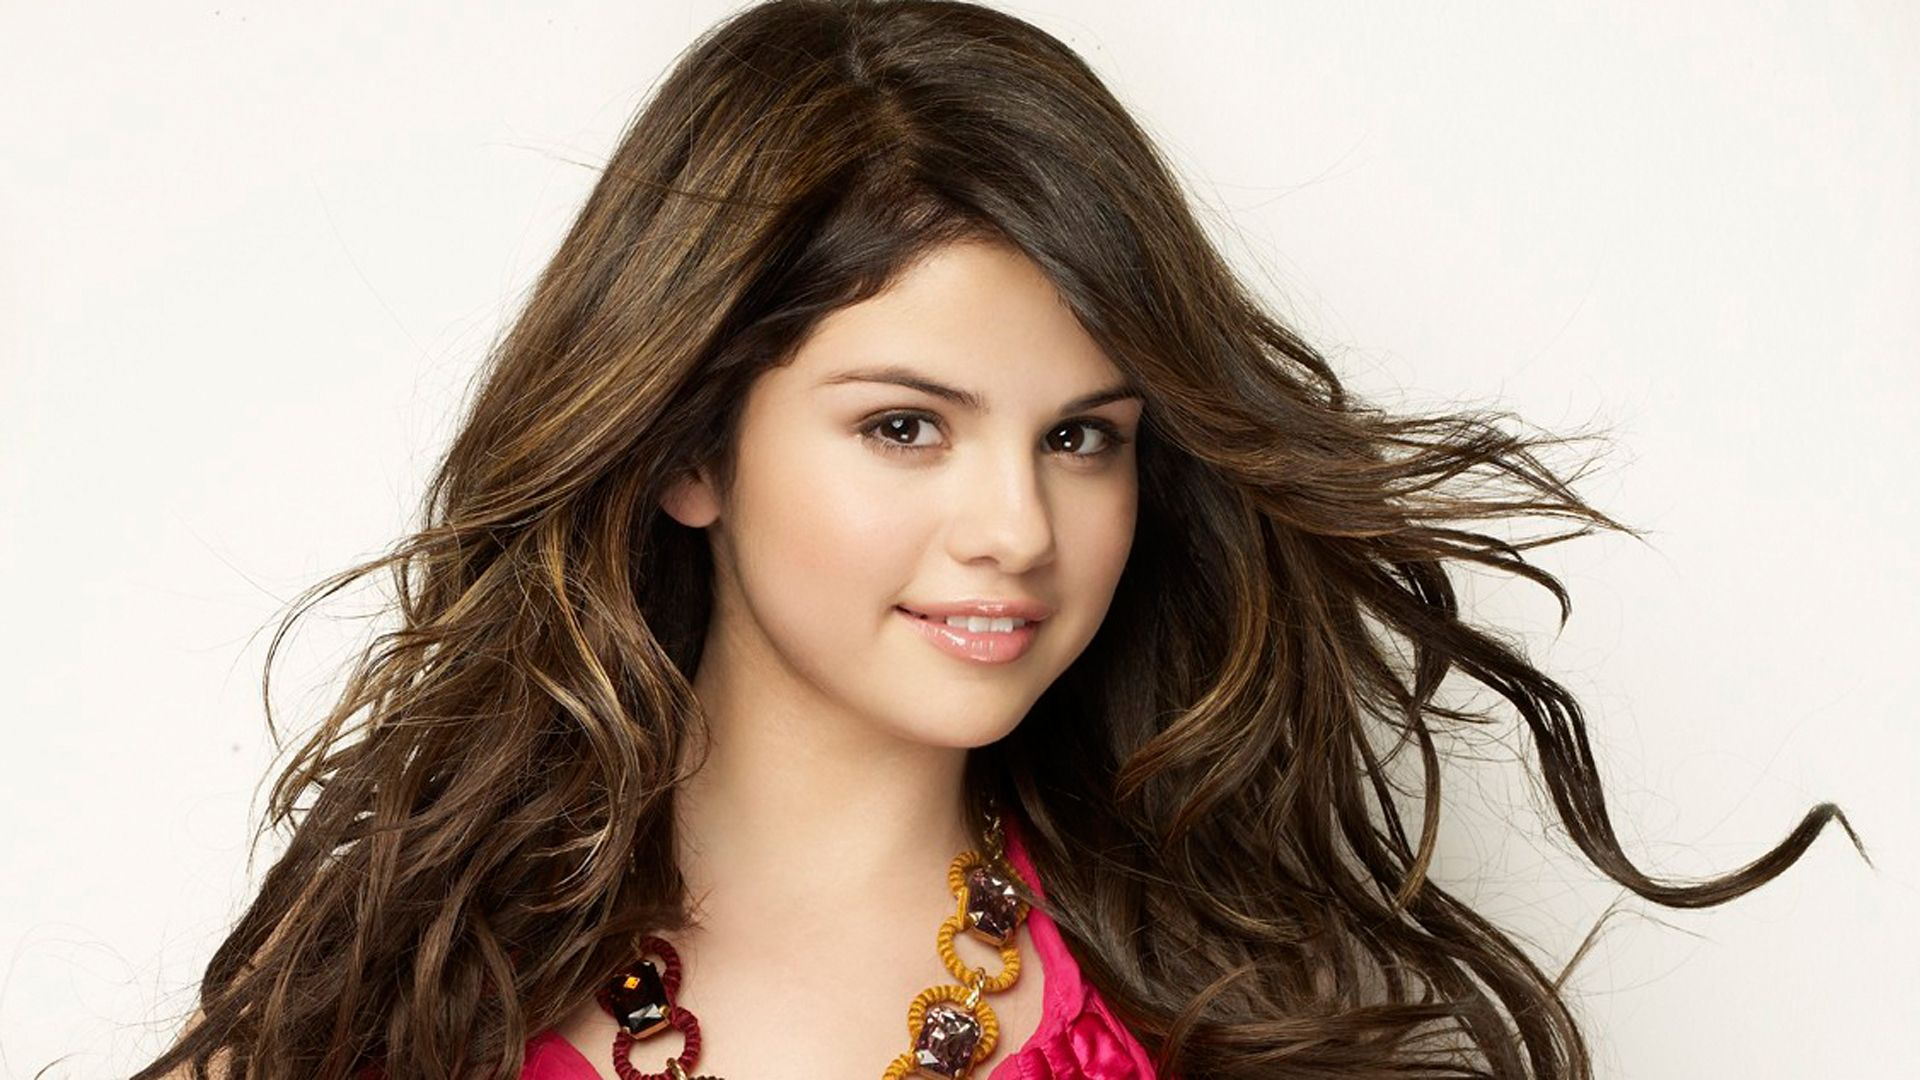 undefined Selena Gomez Pic Wallpapers (56 Wallpapers